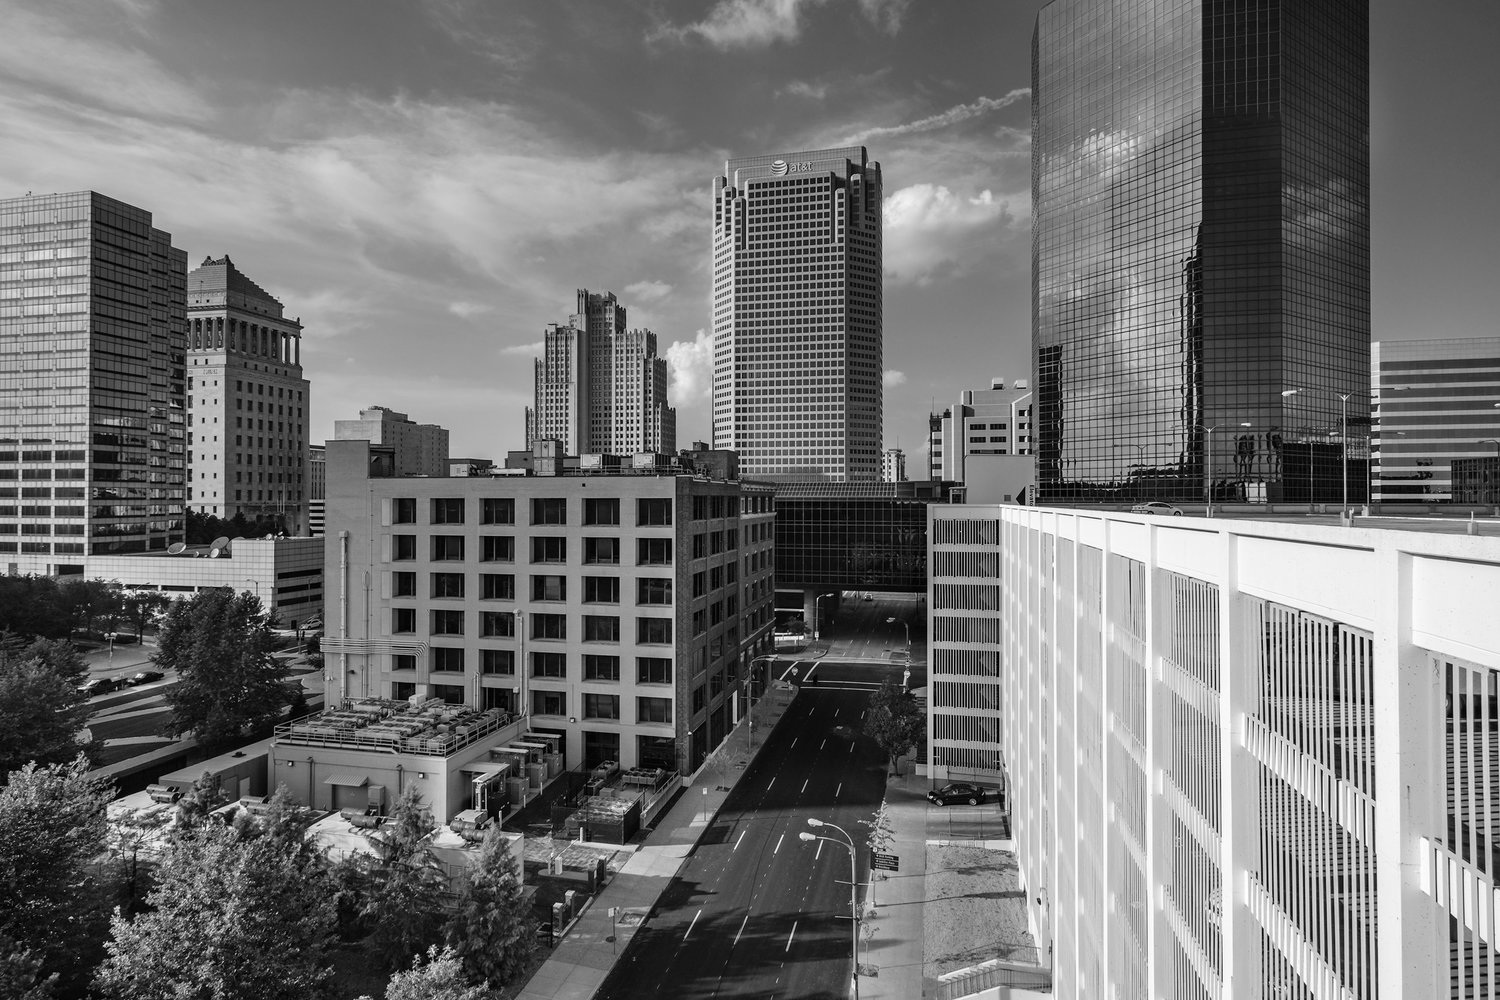 Skyline • Downtown St. Louis, Missouri. Fuji X-Pro 2 and a Fujinon XF16-55mm f2.8 R at 16mm. Image exposed at ISO 200 at f11 for 1/250 of a second.